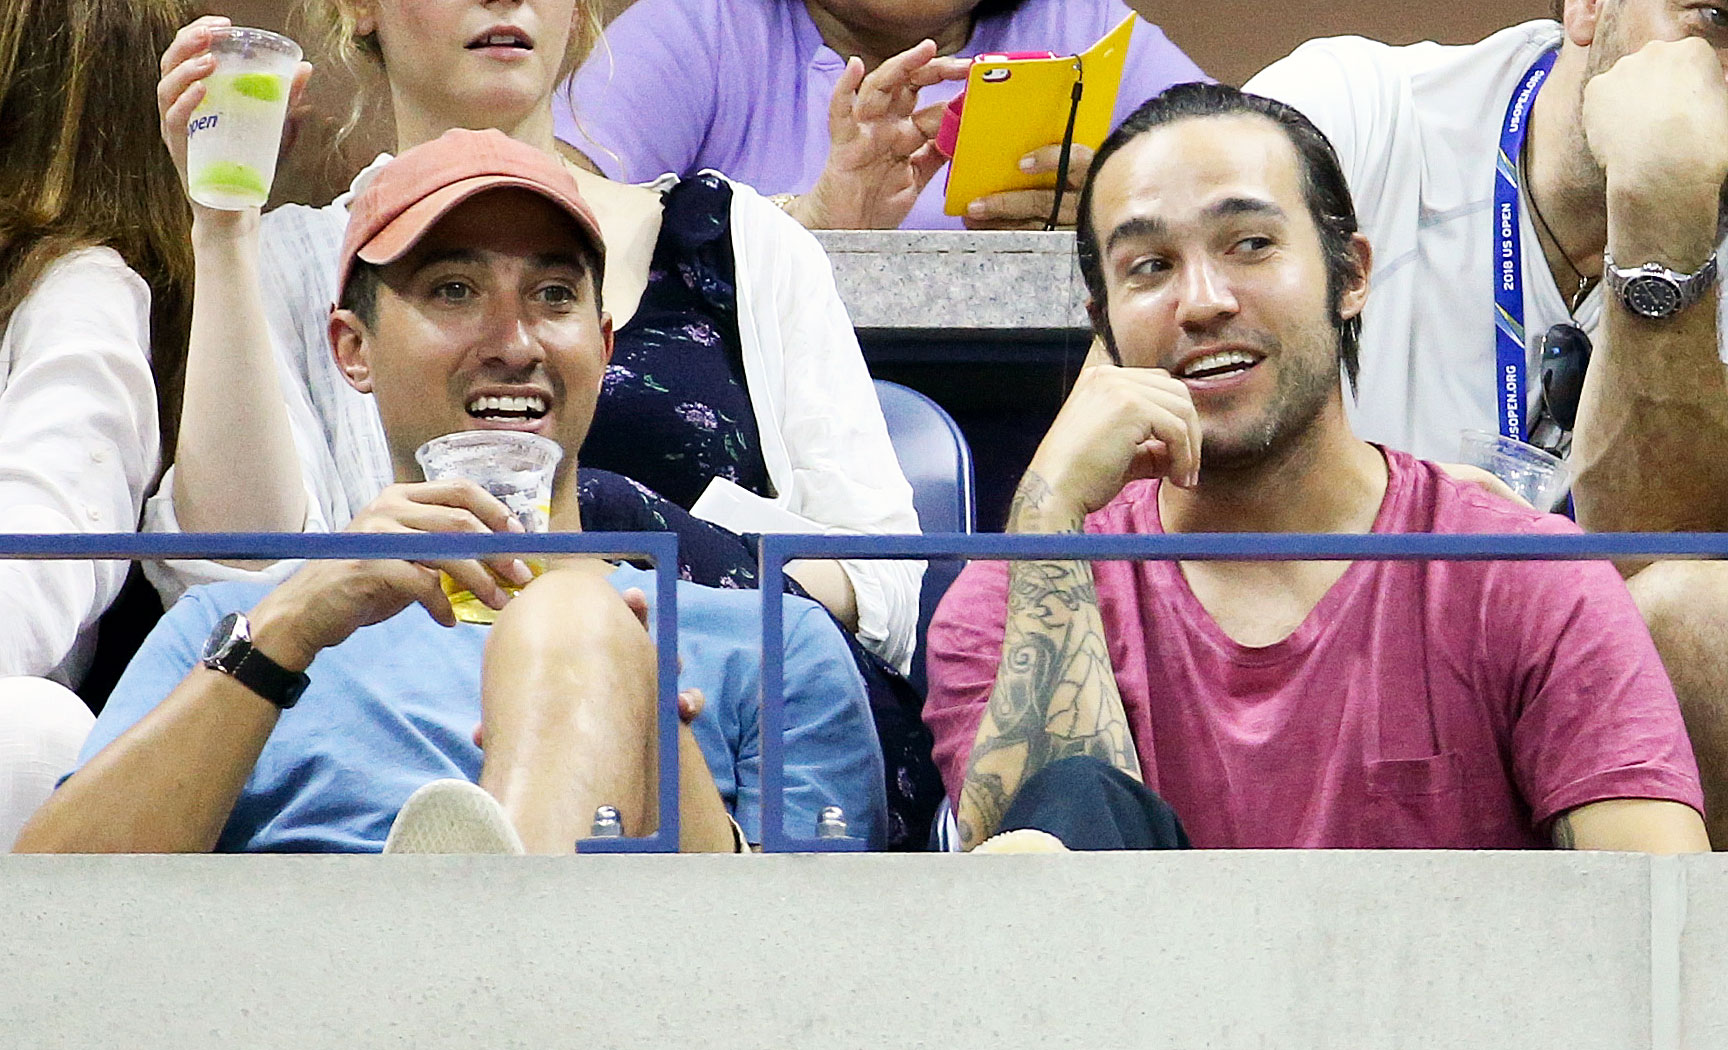 Pete Wentz Us Open 2018 - The Fall Out Boy singer looked nervous as he watched a game on August 30.